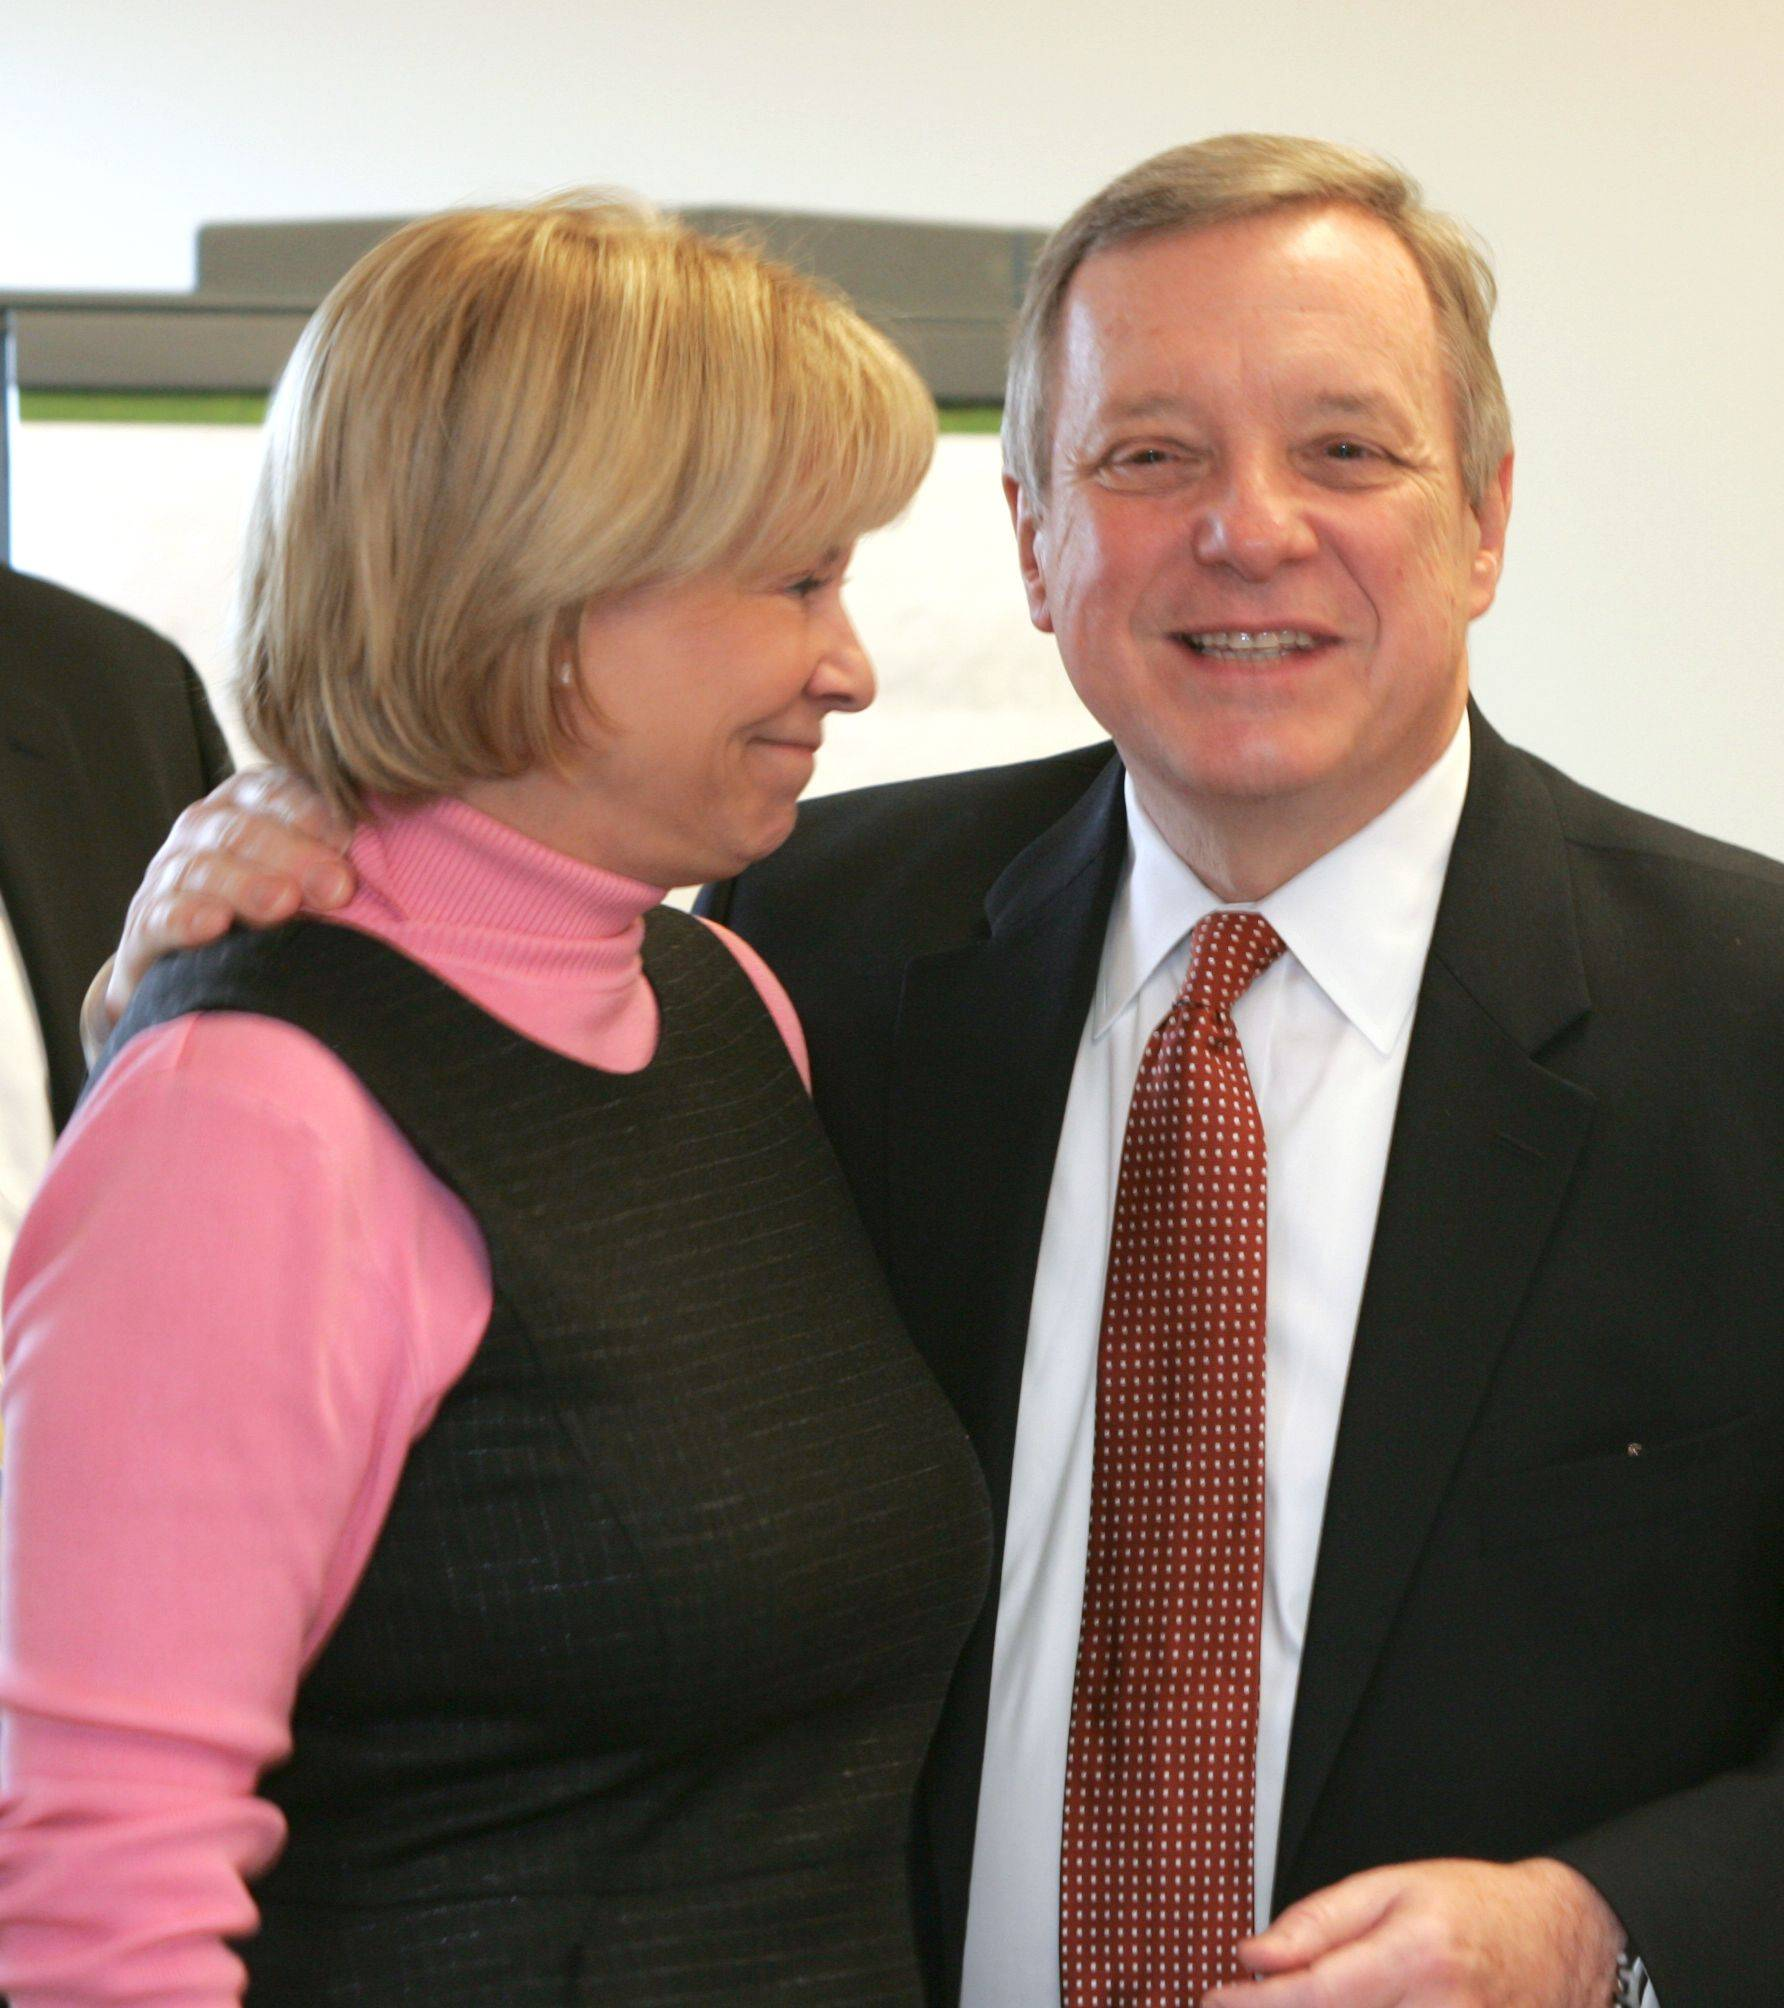 Pam Davis, president and CEO of Edward Hospital, was one of several area business leaders to meet with Sen. Dick Durbin Thursday in Naperville.